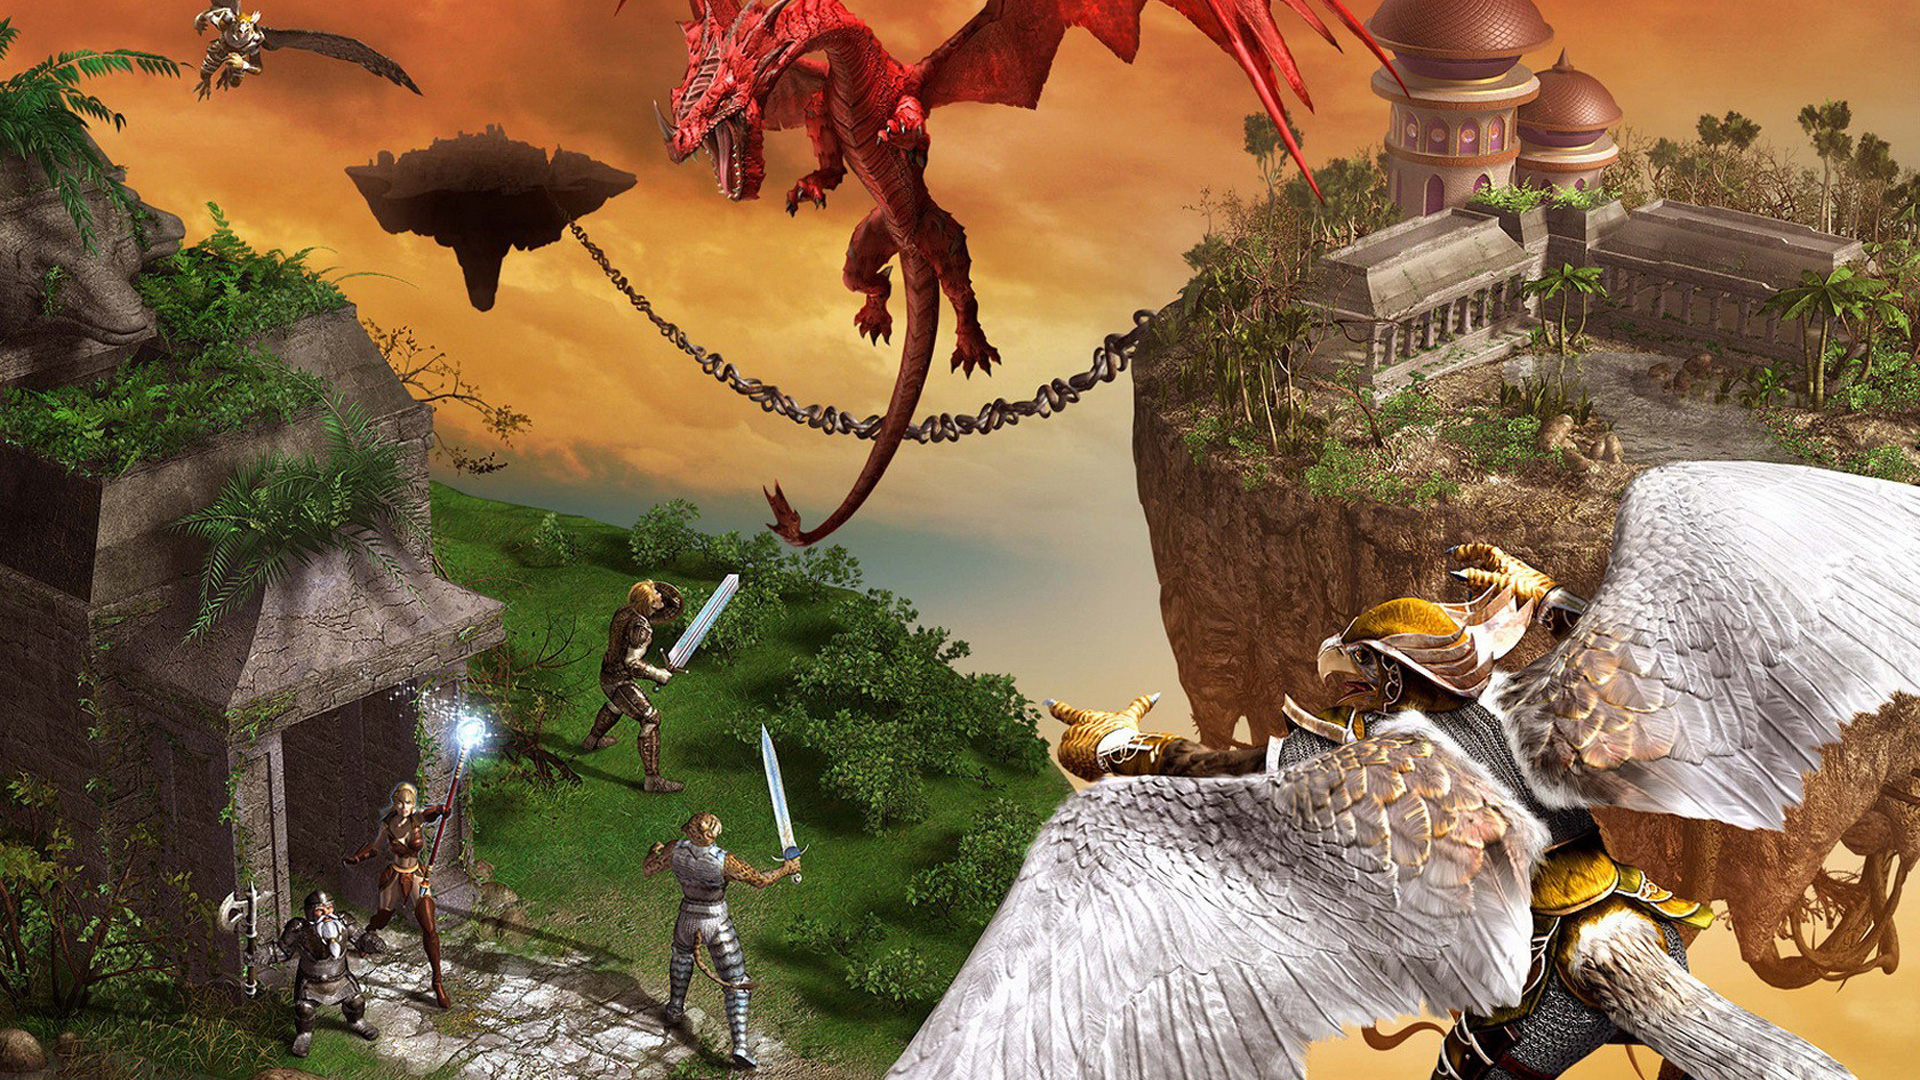 Free Everquest Wallpaper in 1920x1080